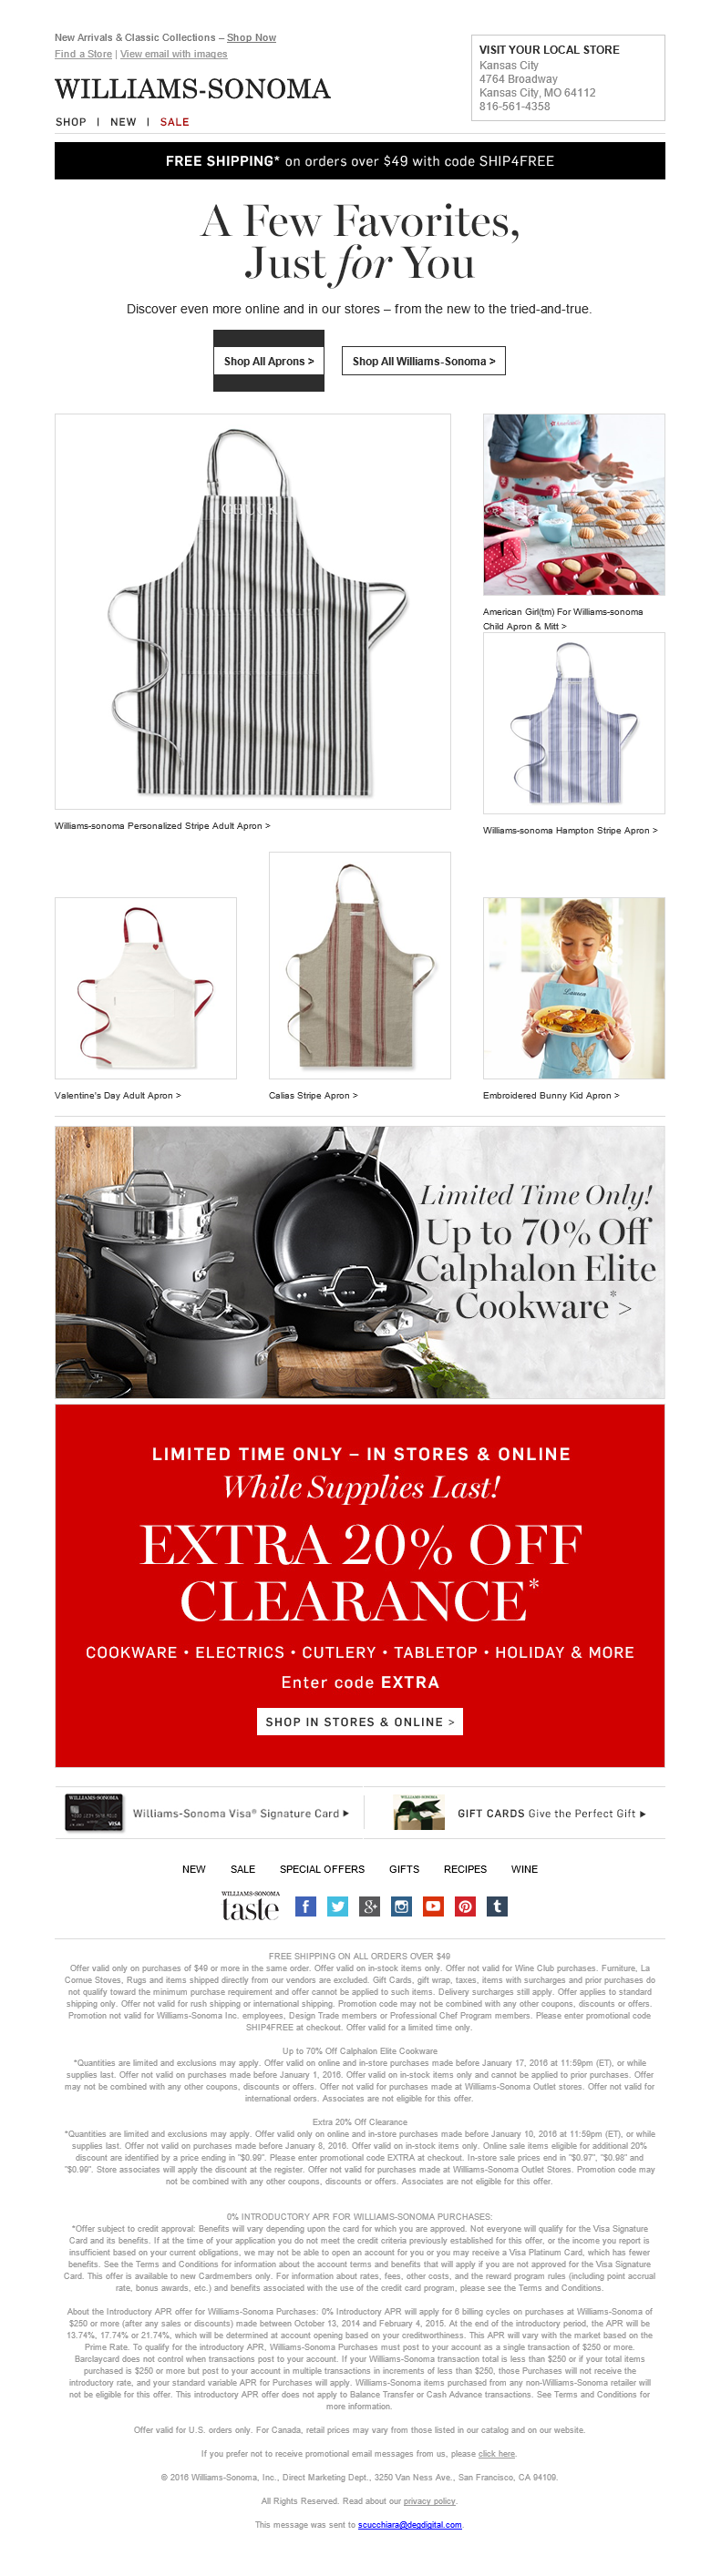 Williams-Sonoma Abandon Browse email | Product placement - not the typical format